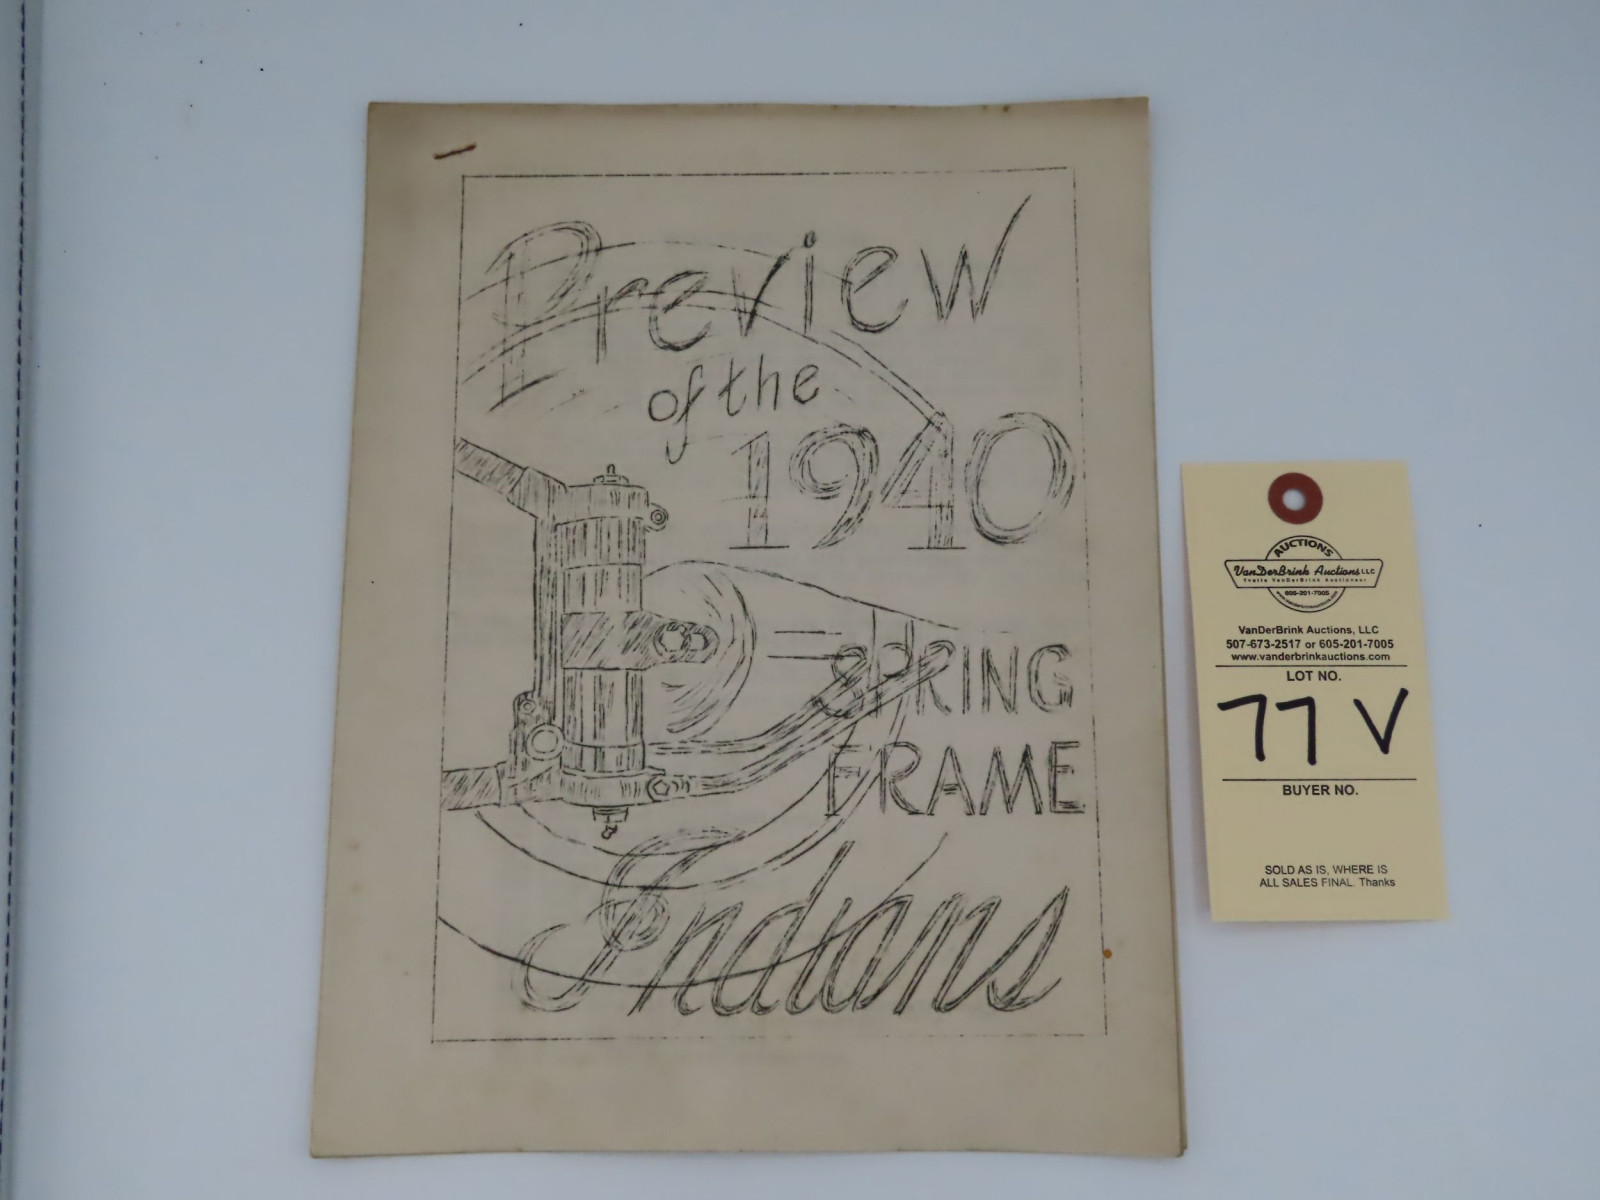 Preview of the 1940 Spring Frame Indian - Image 1